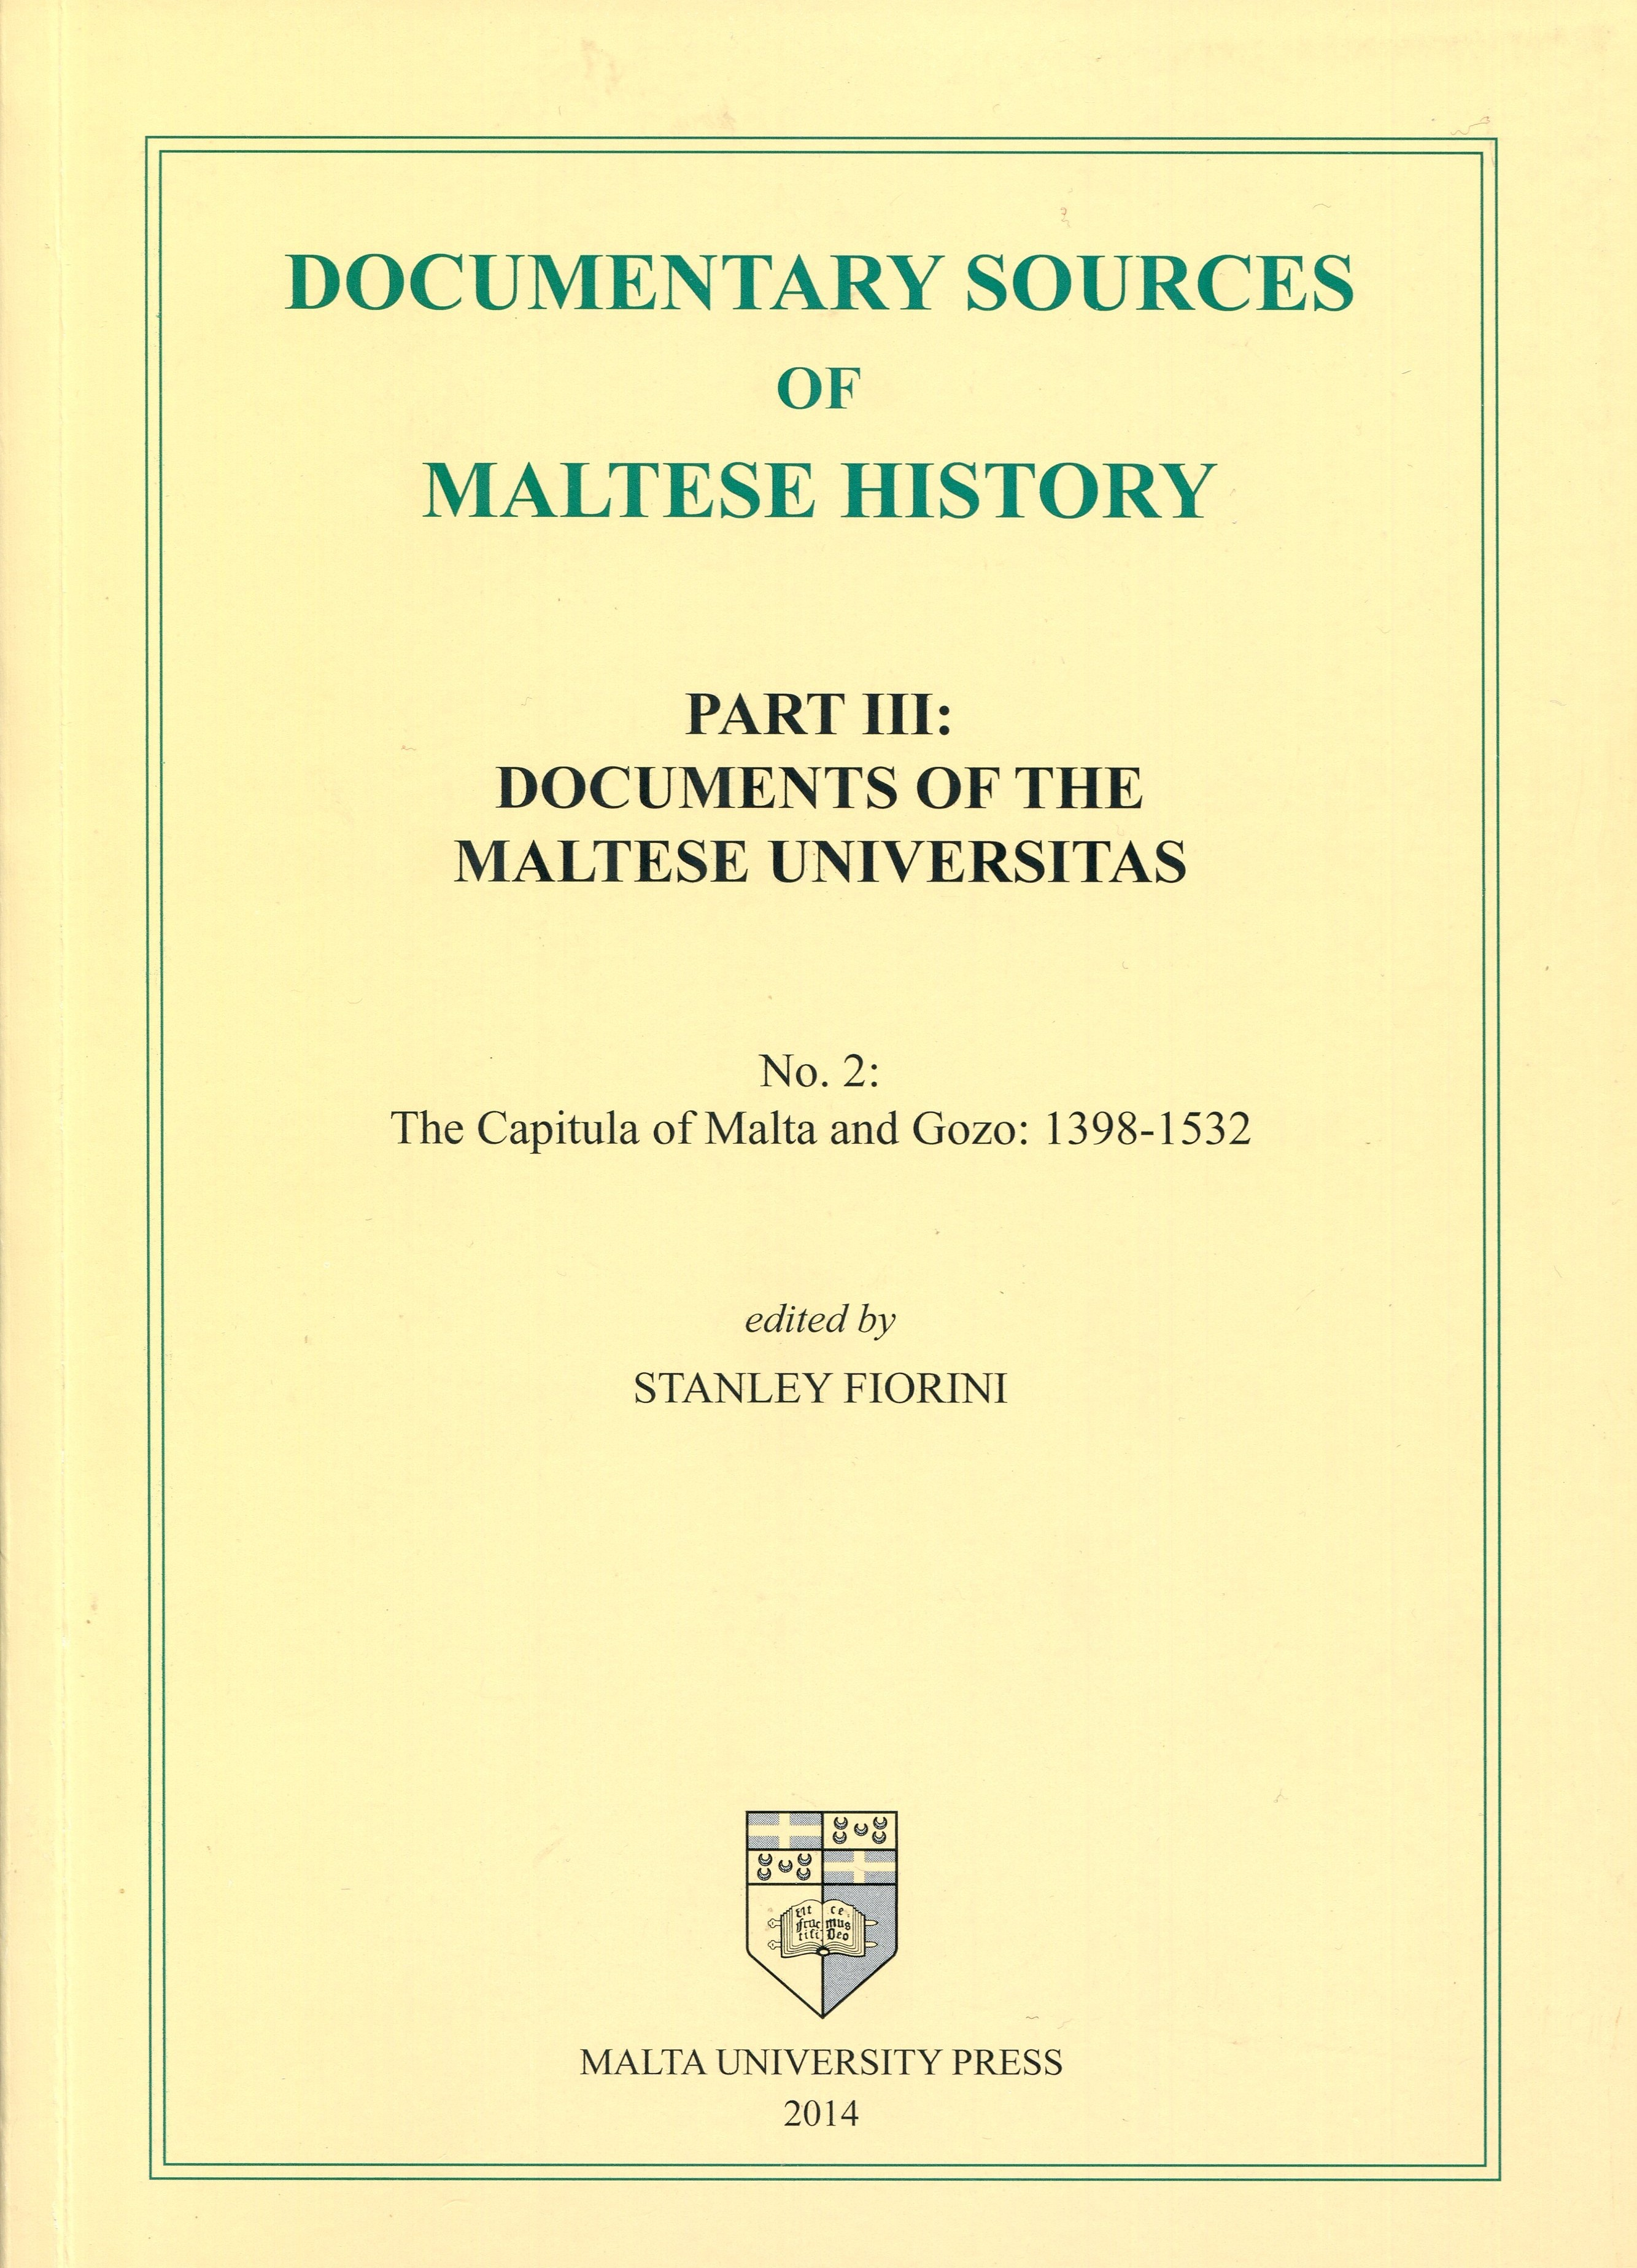 Documentary Sources Of Maltese History Part III: Documents Of The Maltese Universitas No.2: The Capitula of Malta and Gozo: 1398-1532